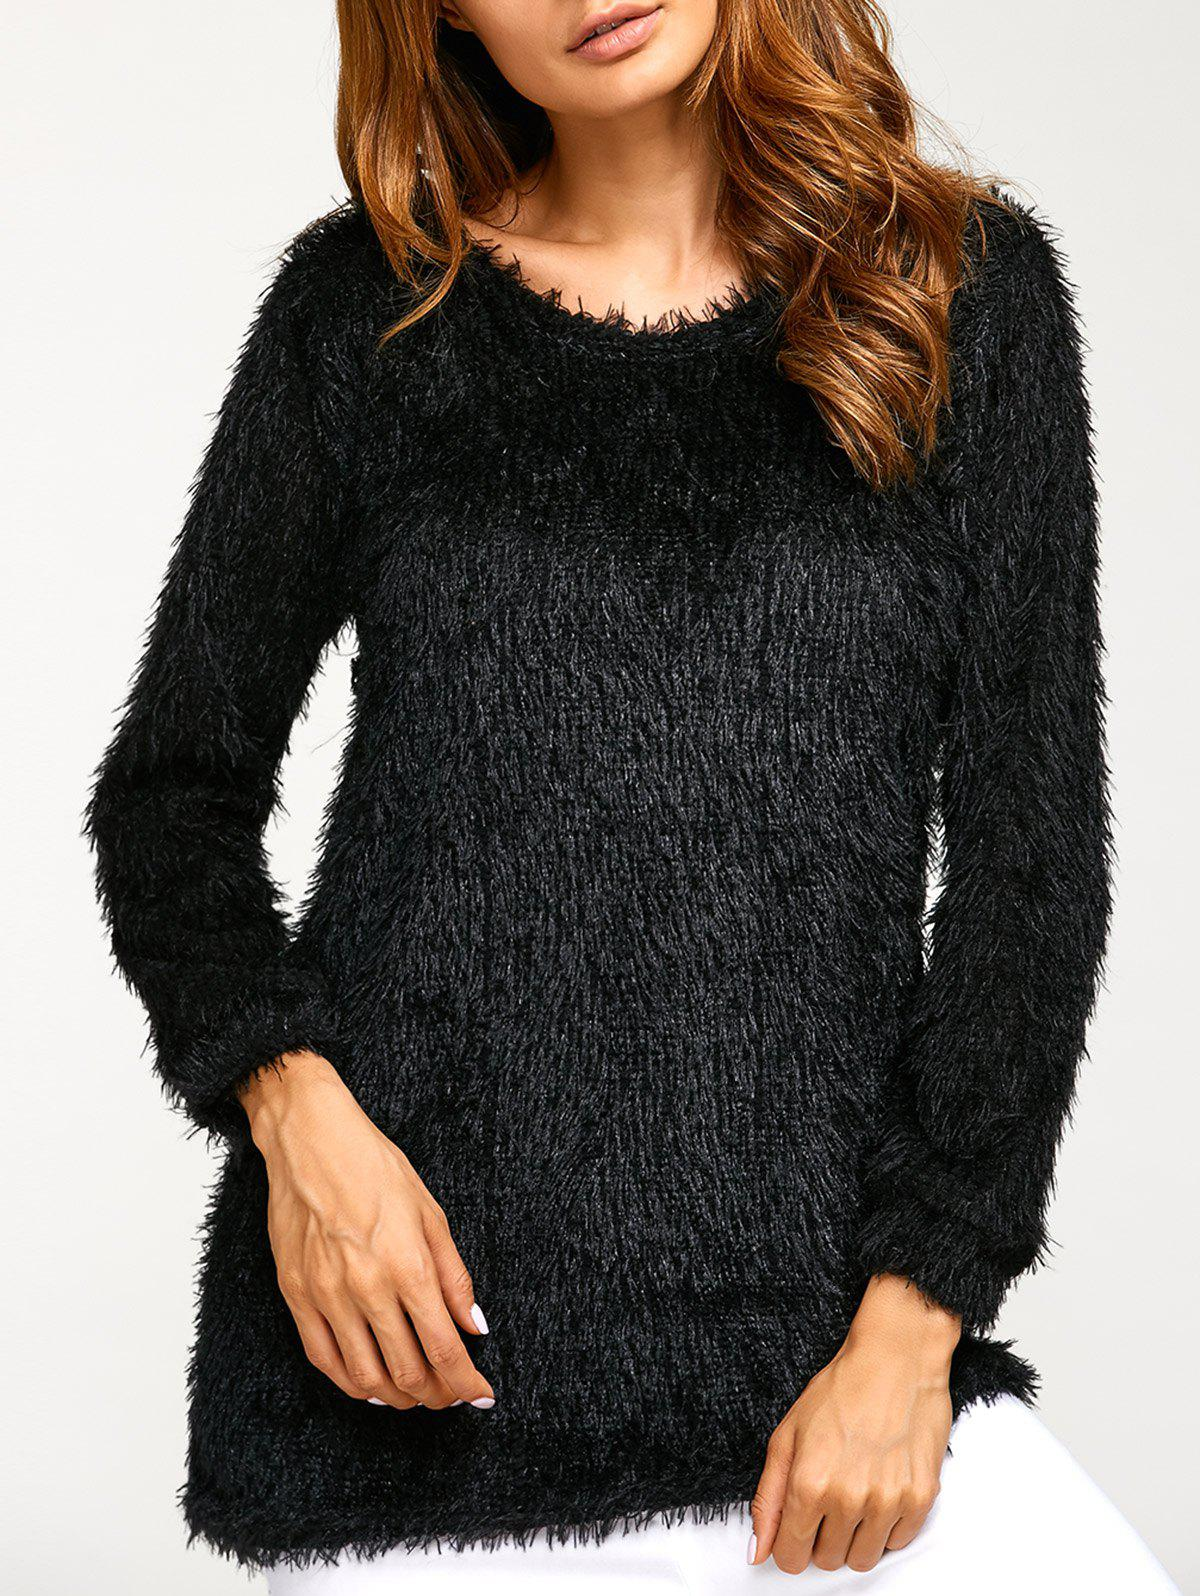 Asymmetric Pullover Mohair SweaterWOMEN<br><br>Size: L; Color: BLACK; Type: Pullovers; Material: Acrylic; Sleeve Length: Full; Collar: Round Neck; Style: Casual; Pattern Type: Solid; Season: Fall,Spring,Winter; Weight: 0.300kg; Package Contents: 1 x Sweater;